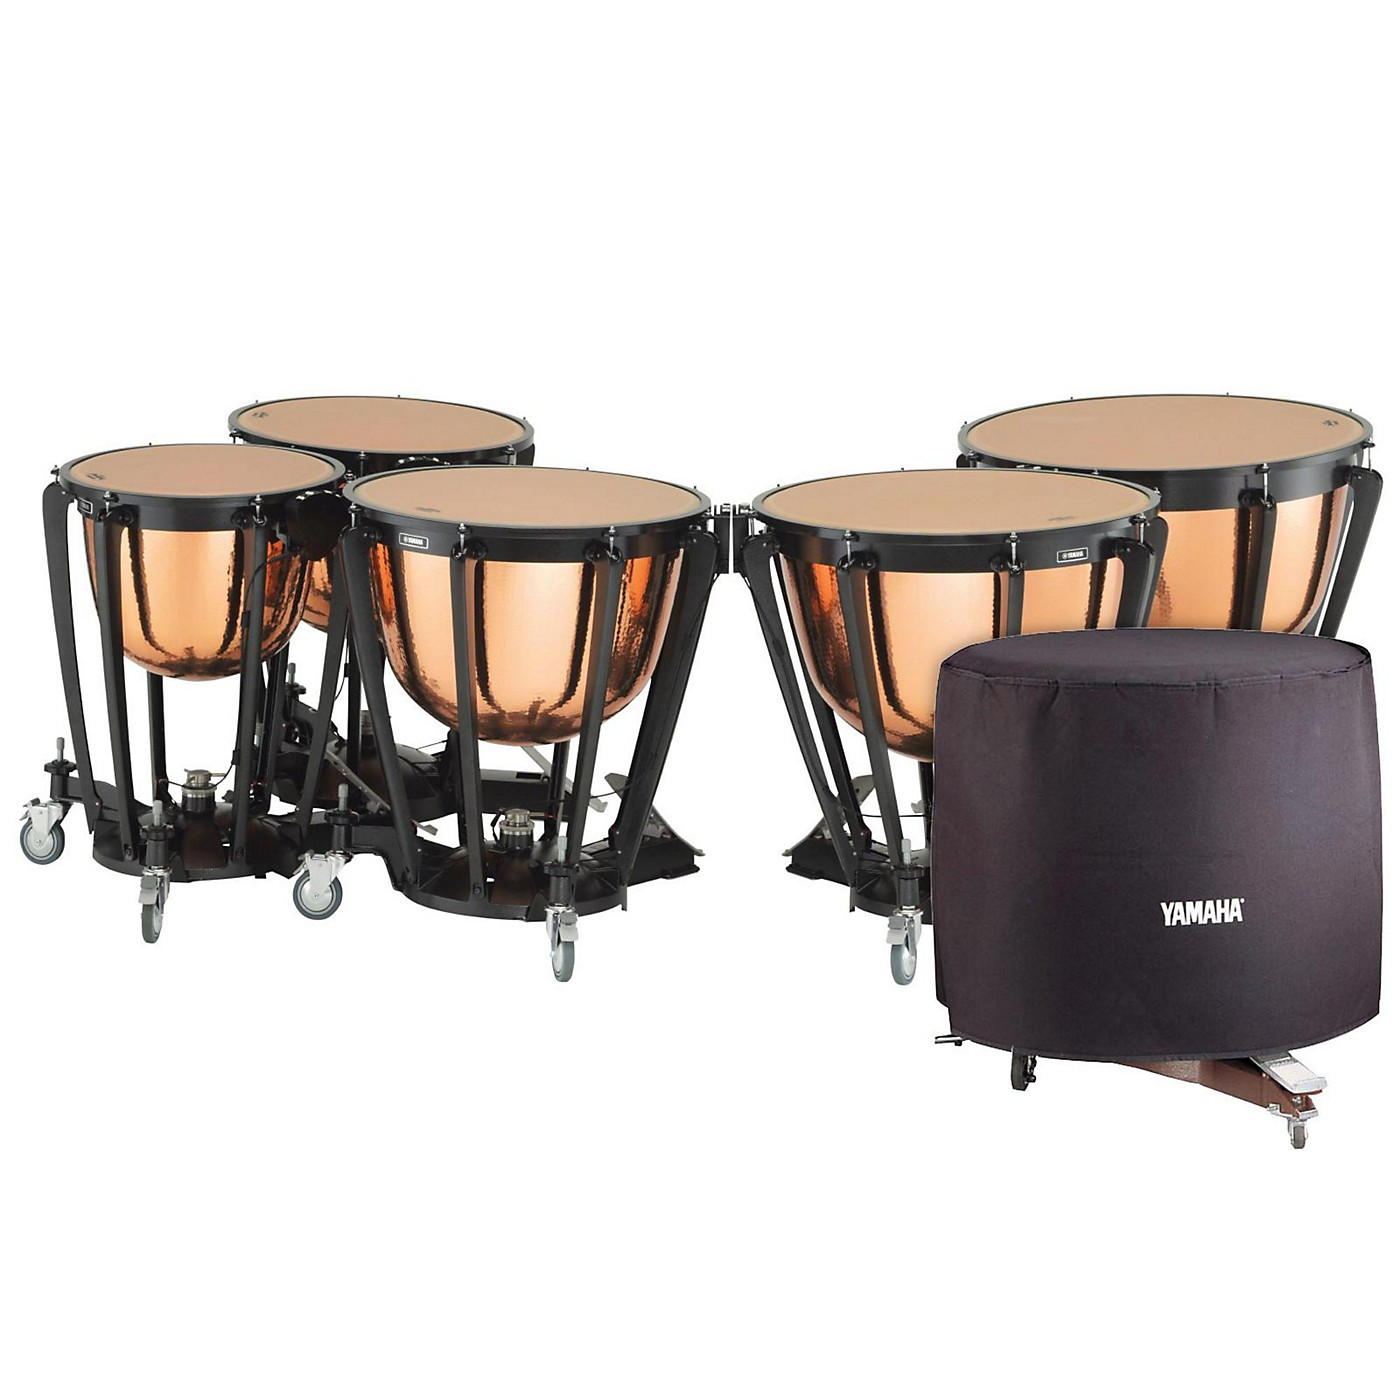 Yamaha 7300 Series Professional Hammered Copper Timpani Set with Long Cover thumbnail